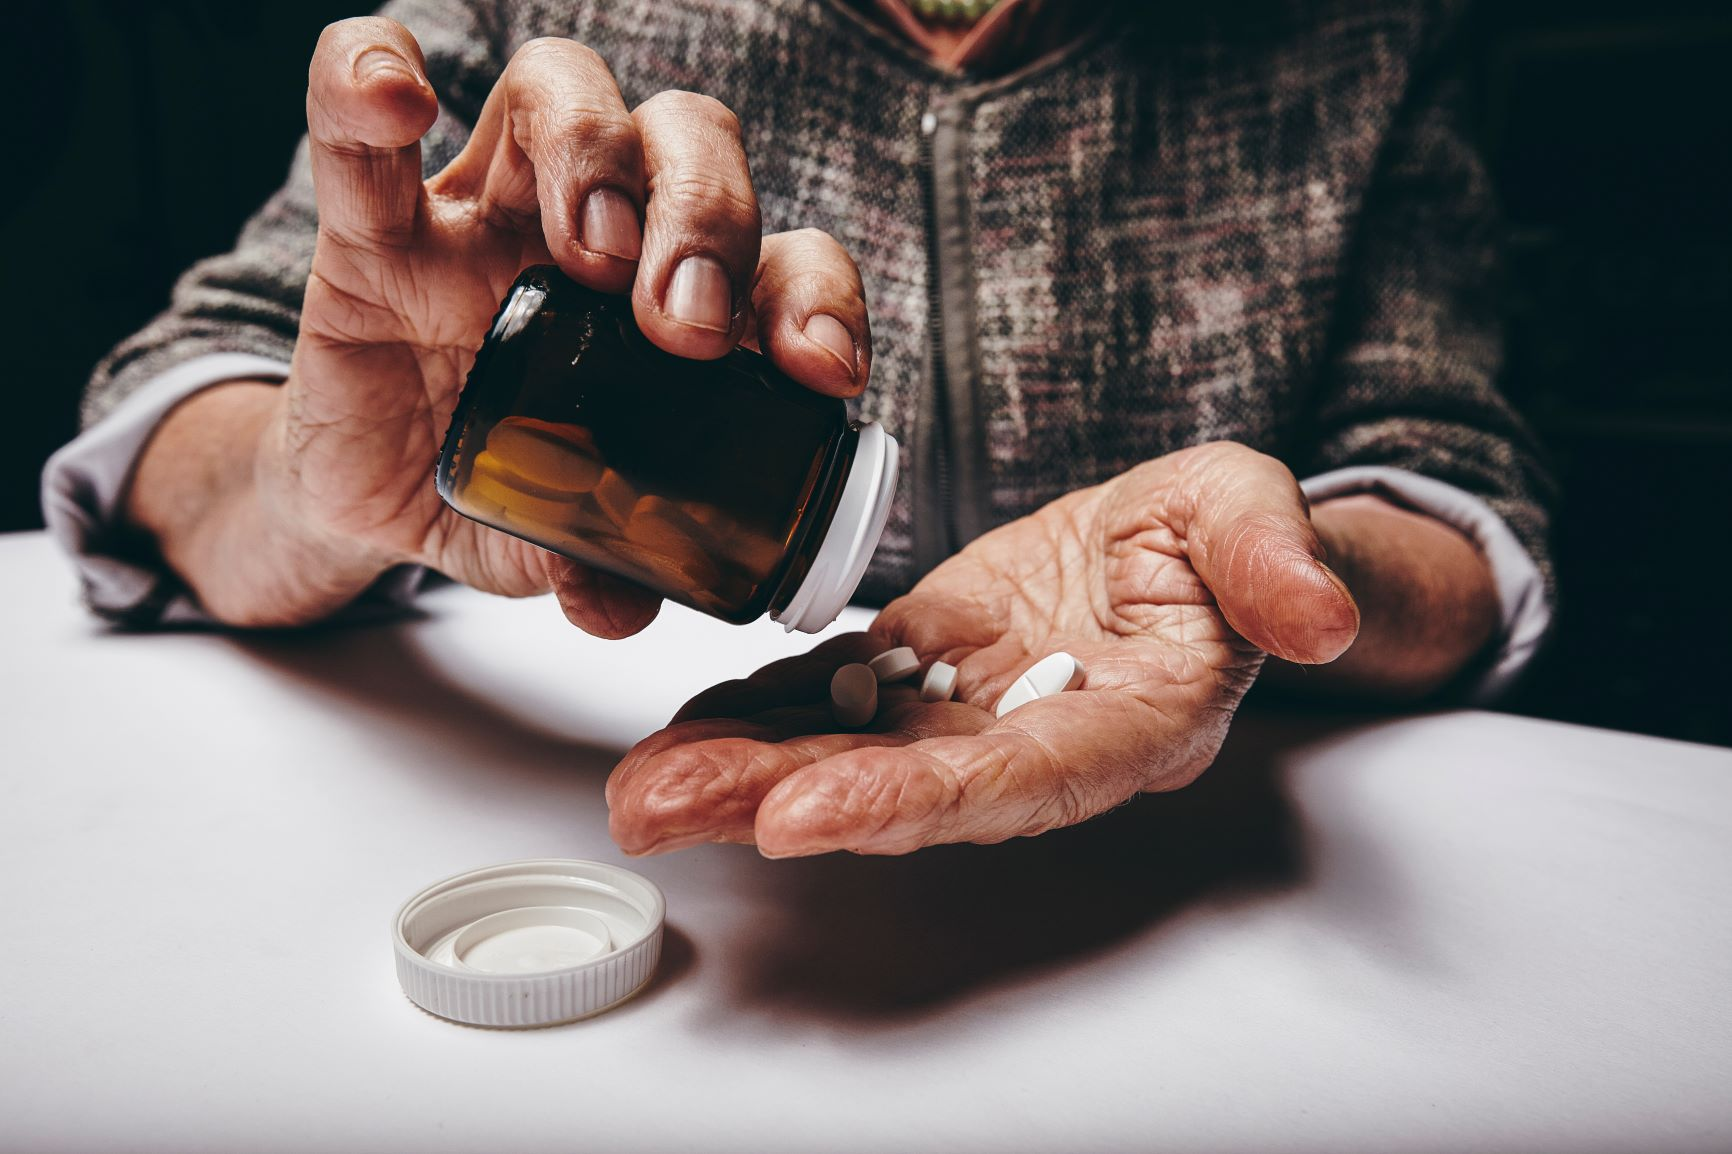 A Painless Decision: Chiropractic's solution for drug-free pain relief